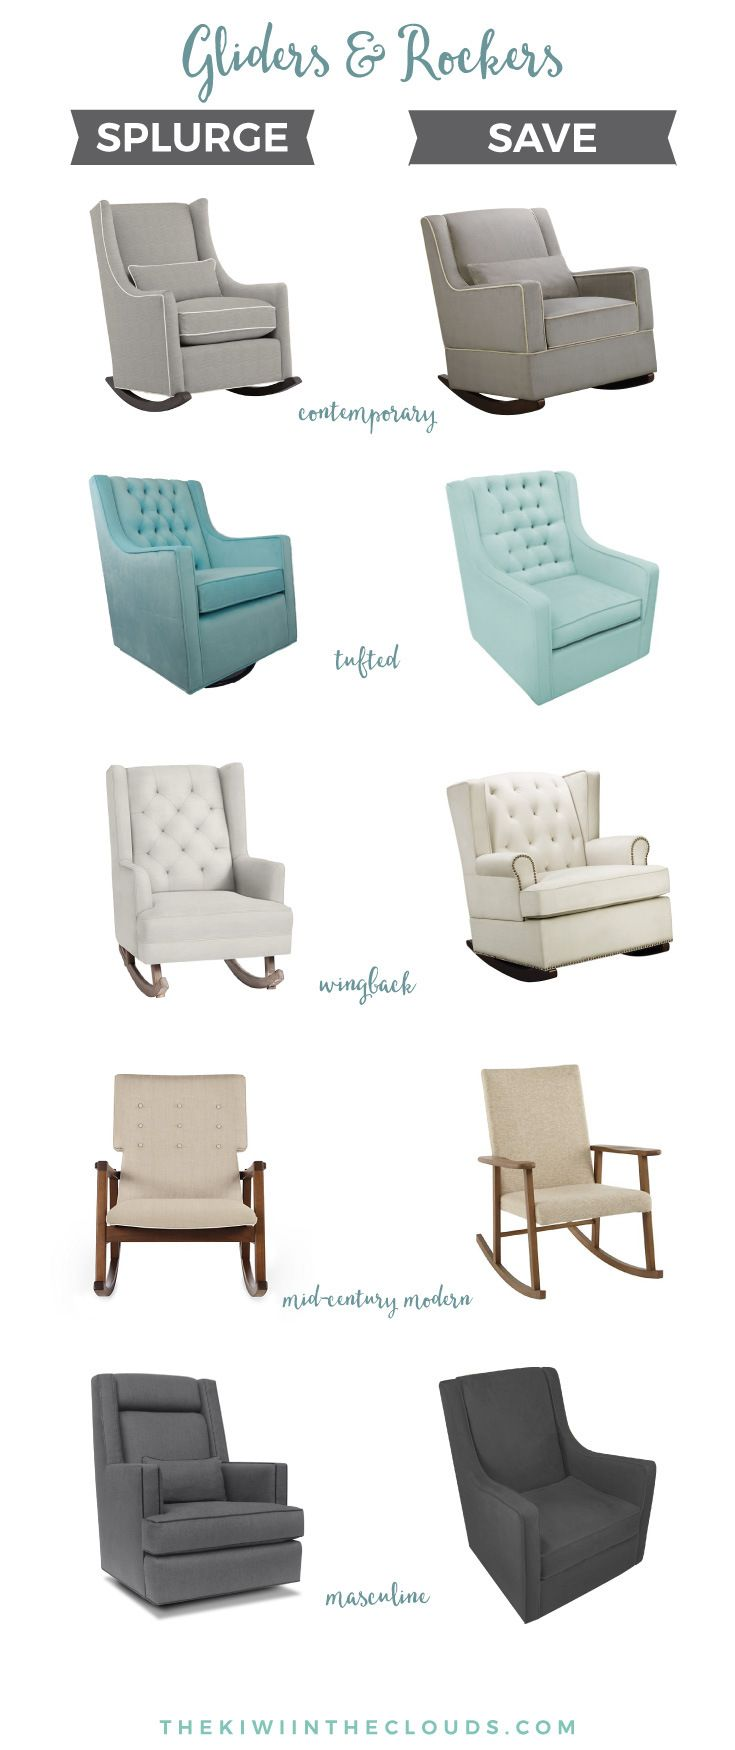 Nursery Gliders & Rockers For Every Budget | nursery chair | newborn essentials | pregnancy